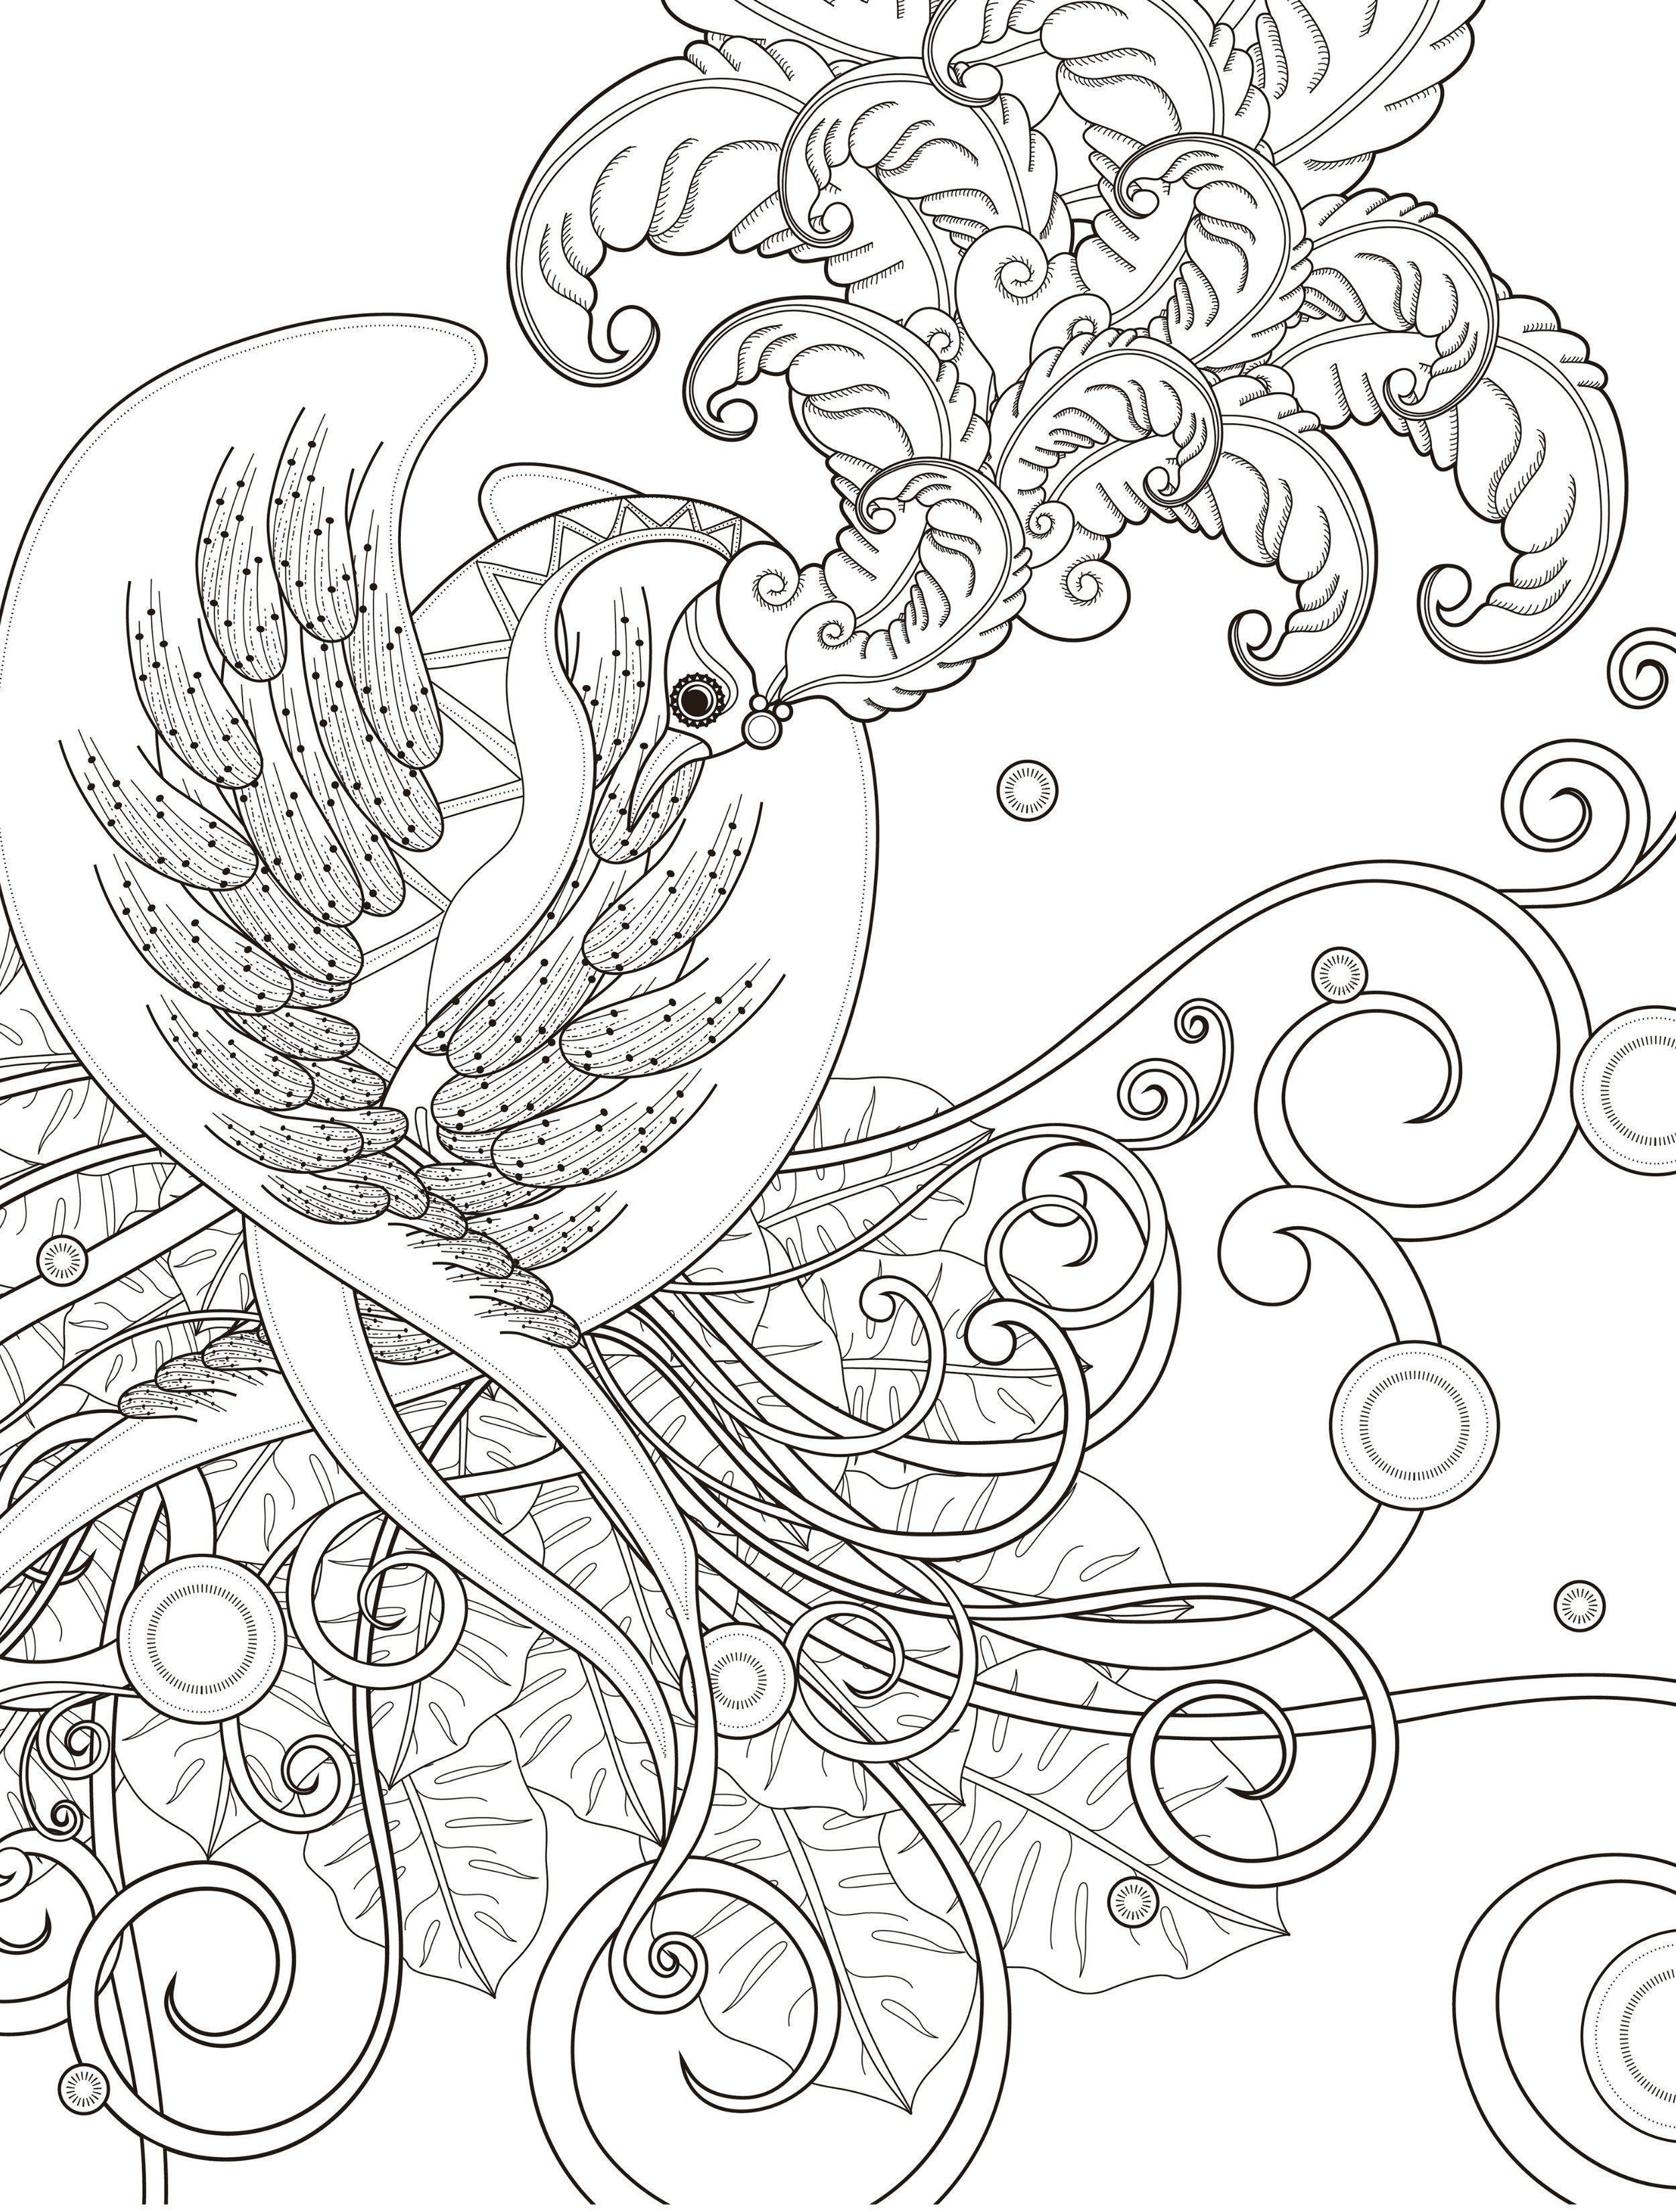 20 Gorgeous Free Printable Adult Coloring Pages | Arts and crafts ...